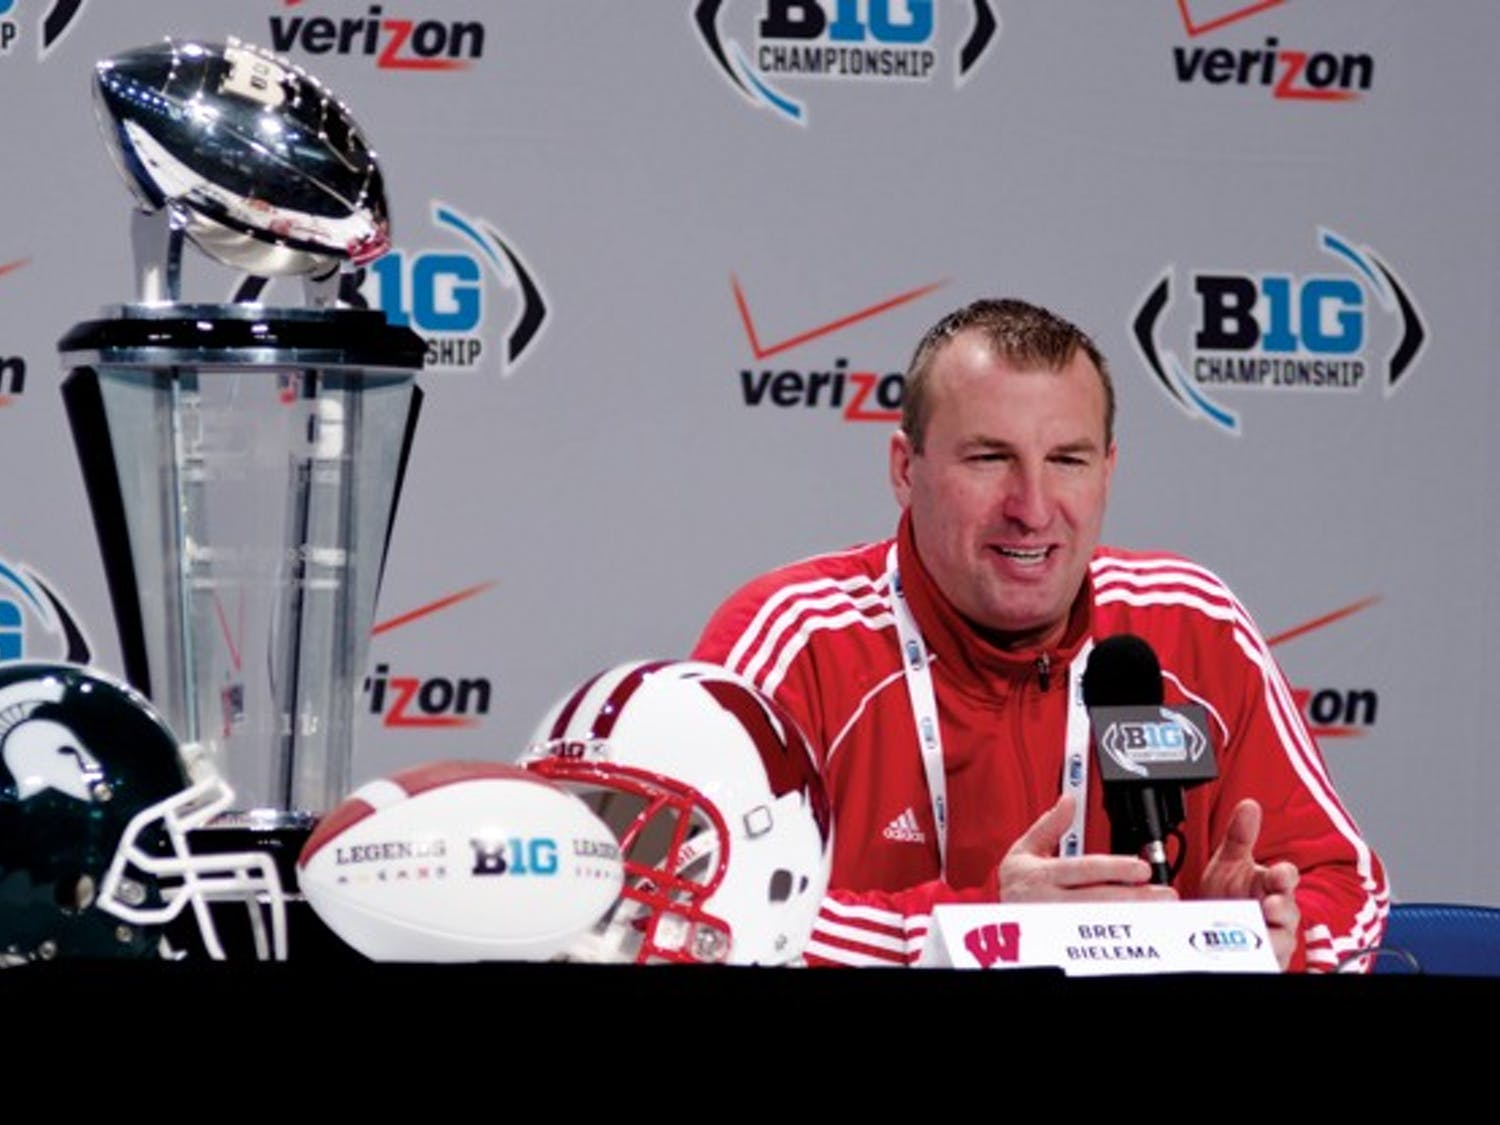 Photos: The B1G Championship Press Conference